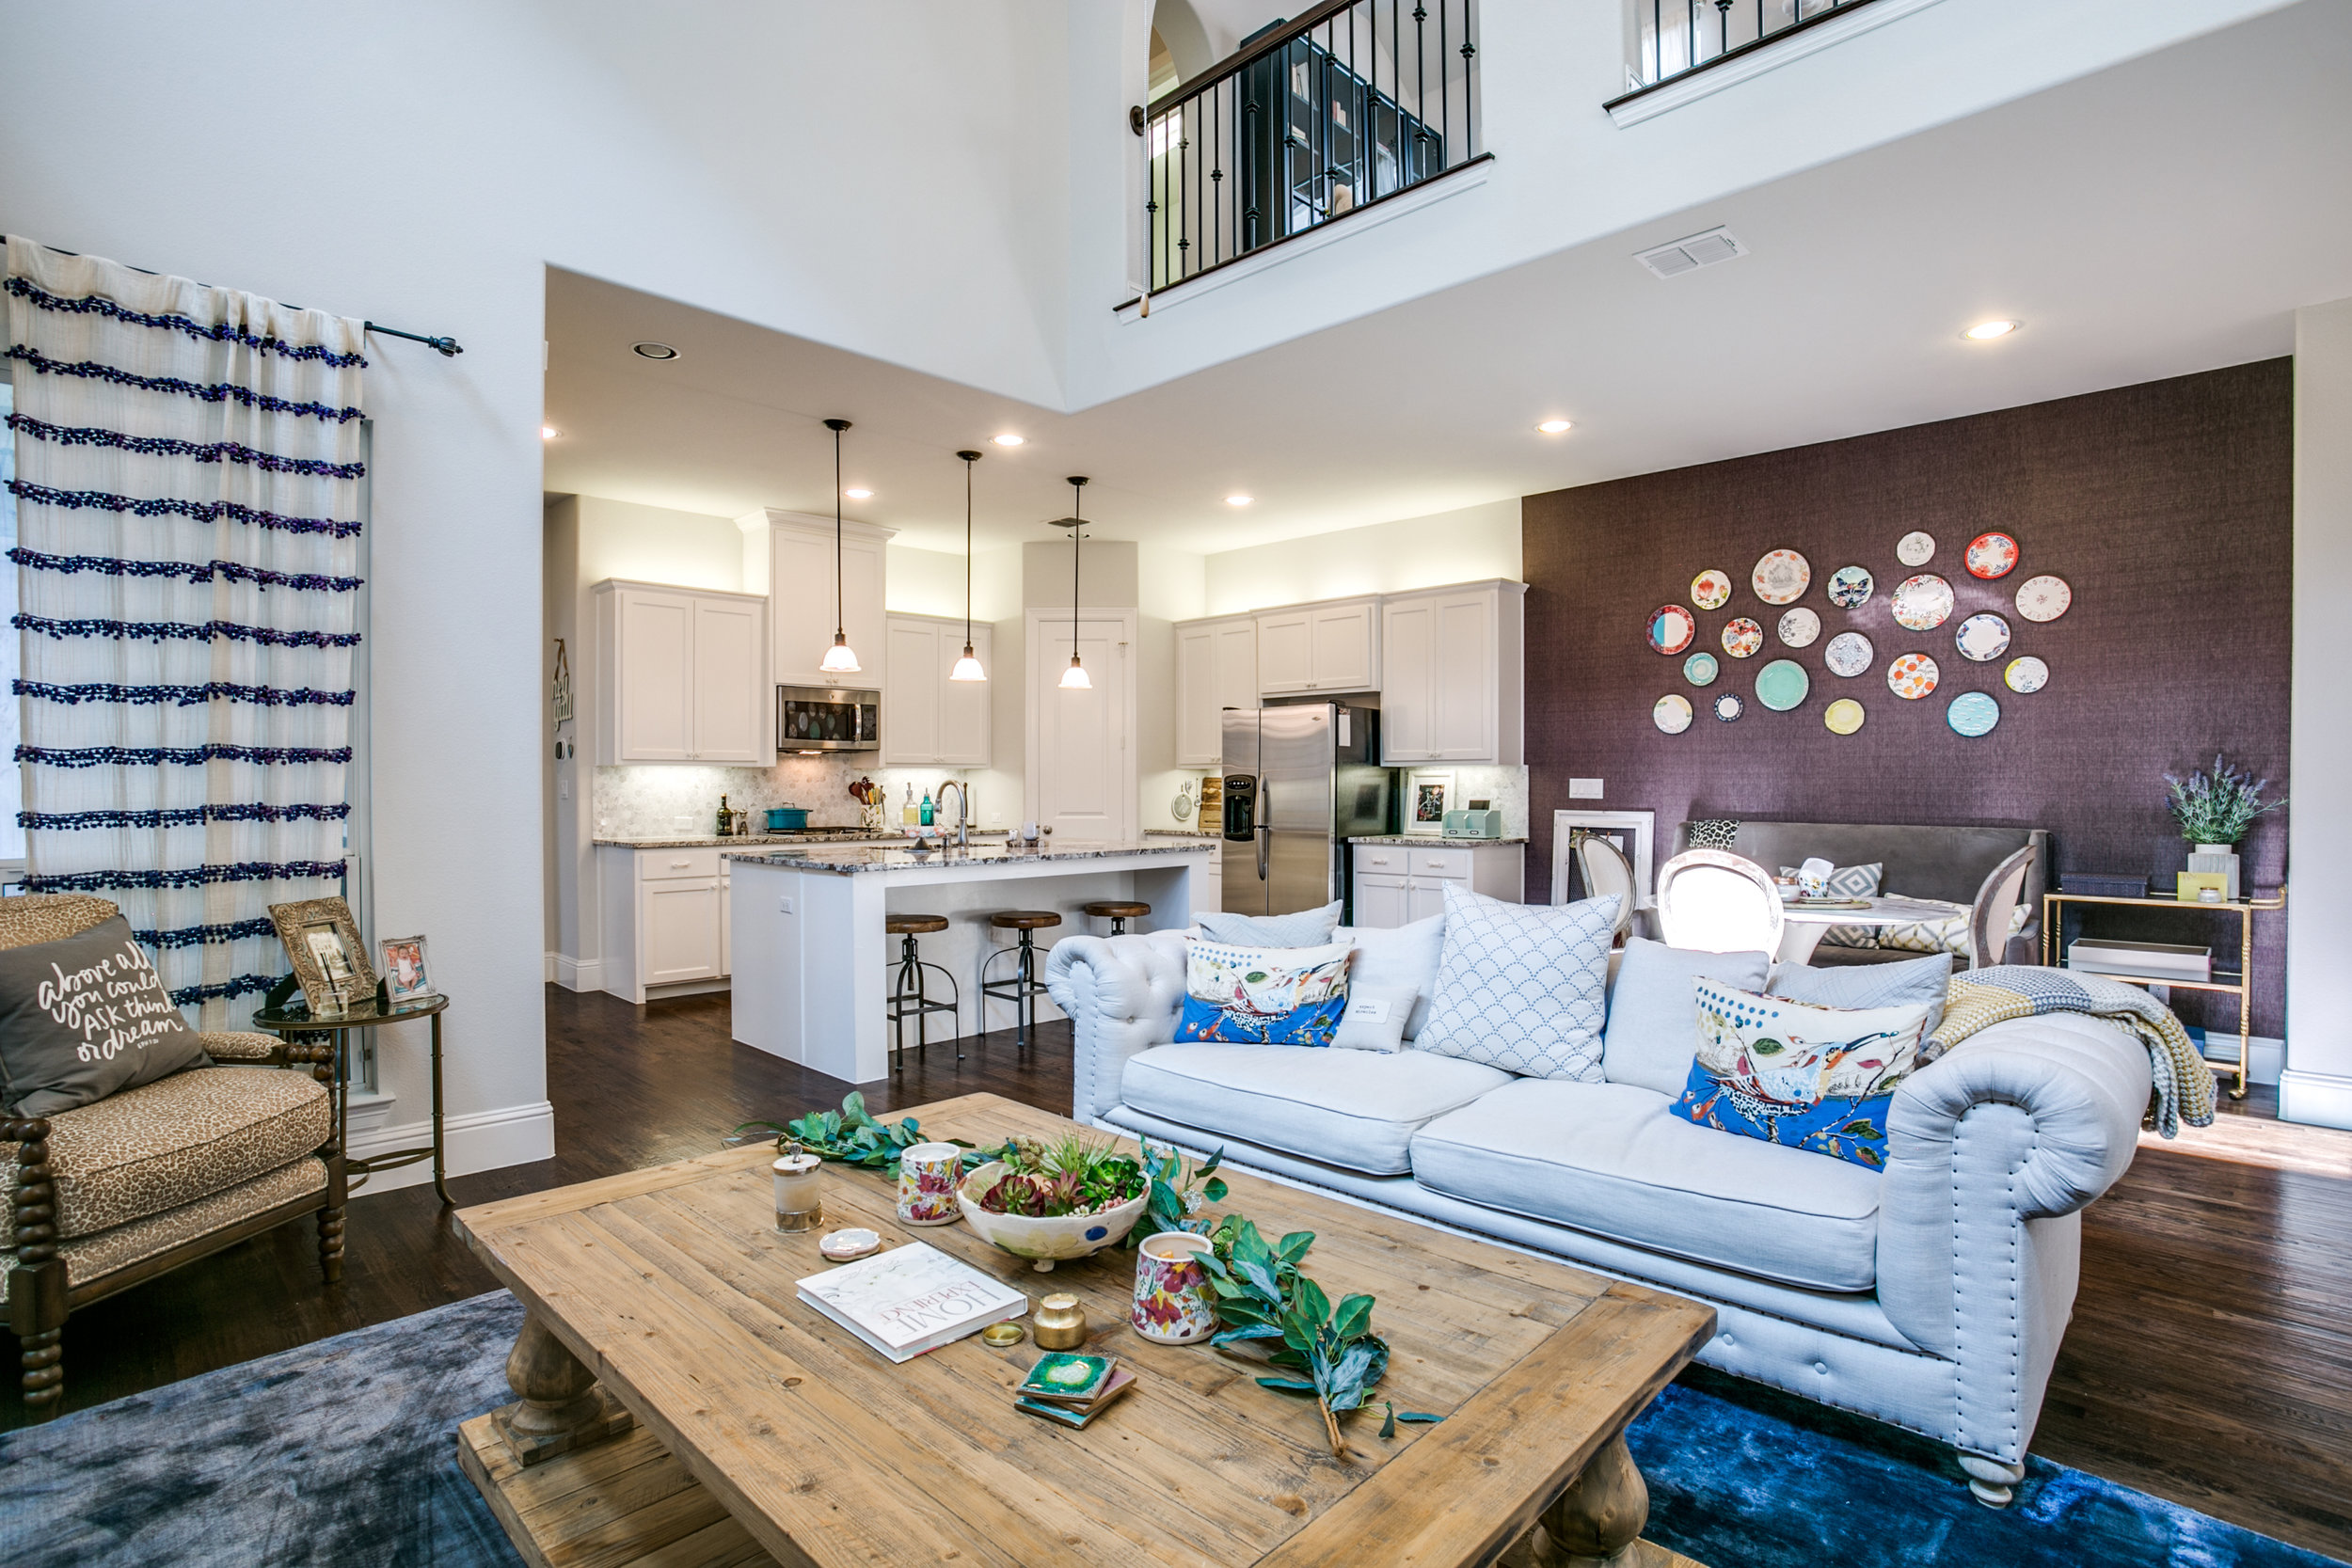 465-travis-st-coppell-tx-High-Res-8.jpg